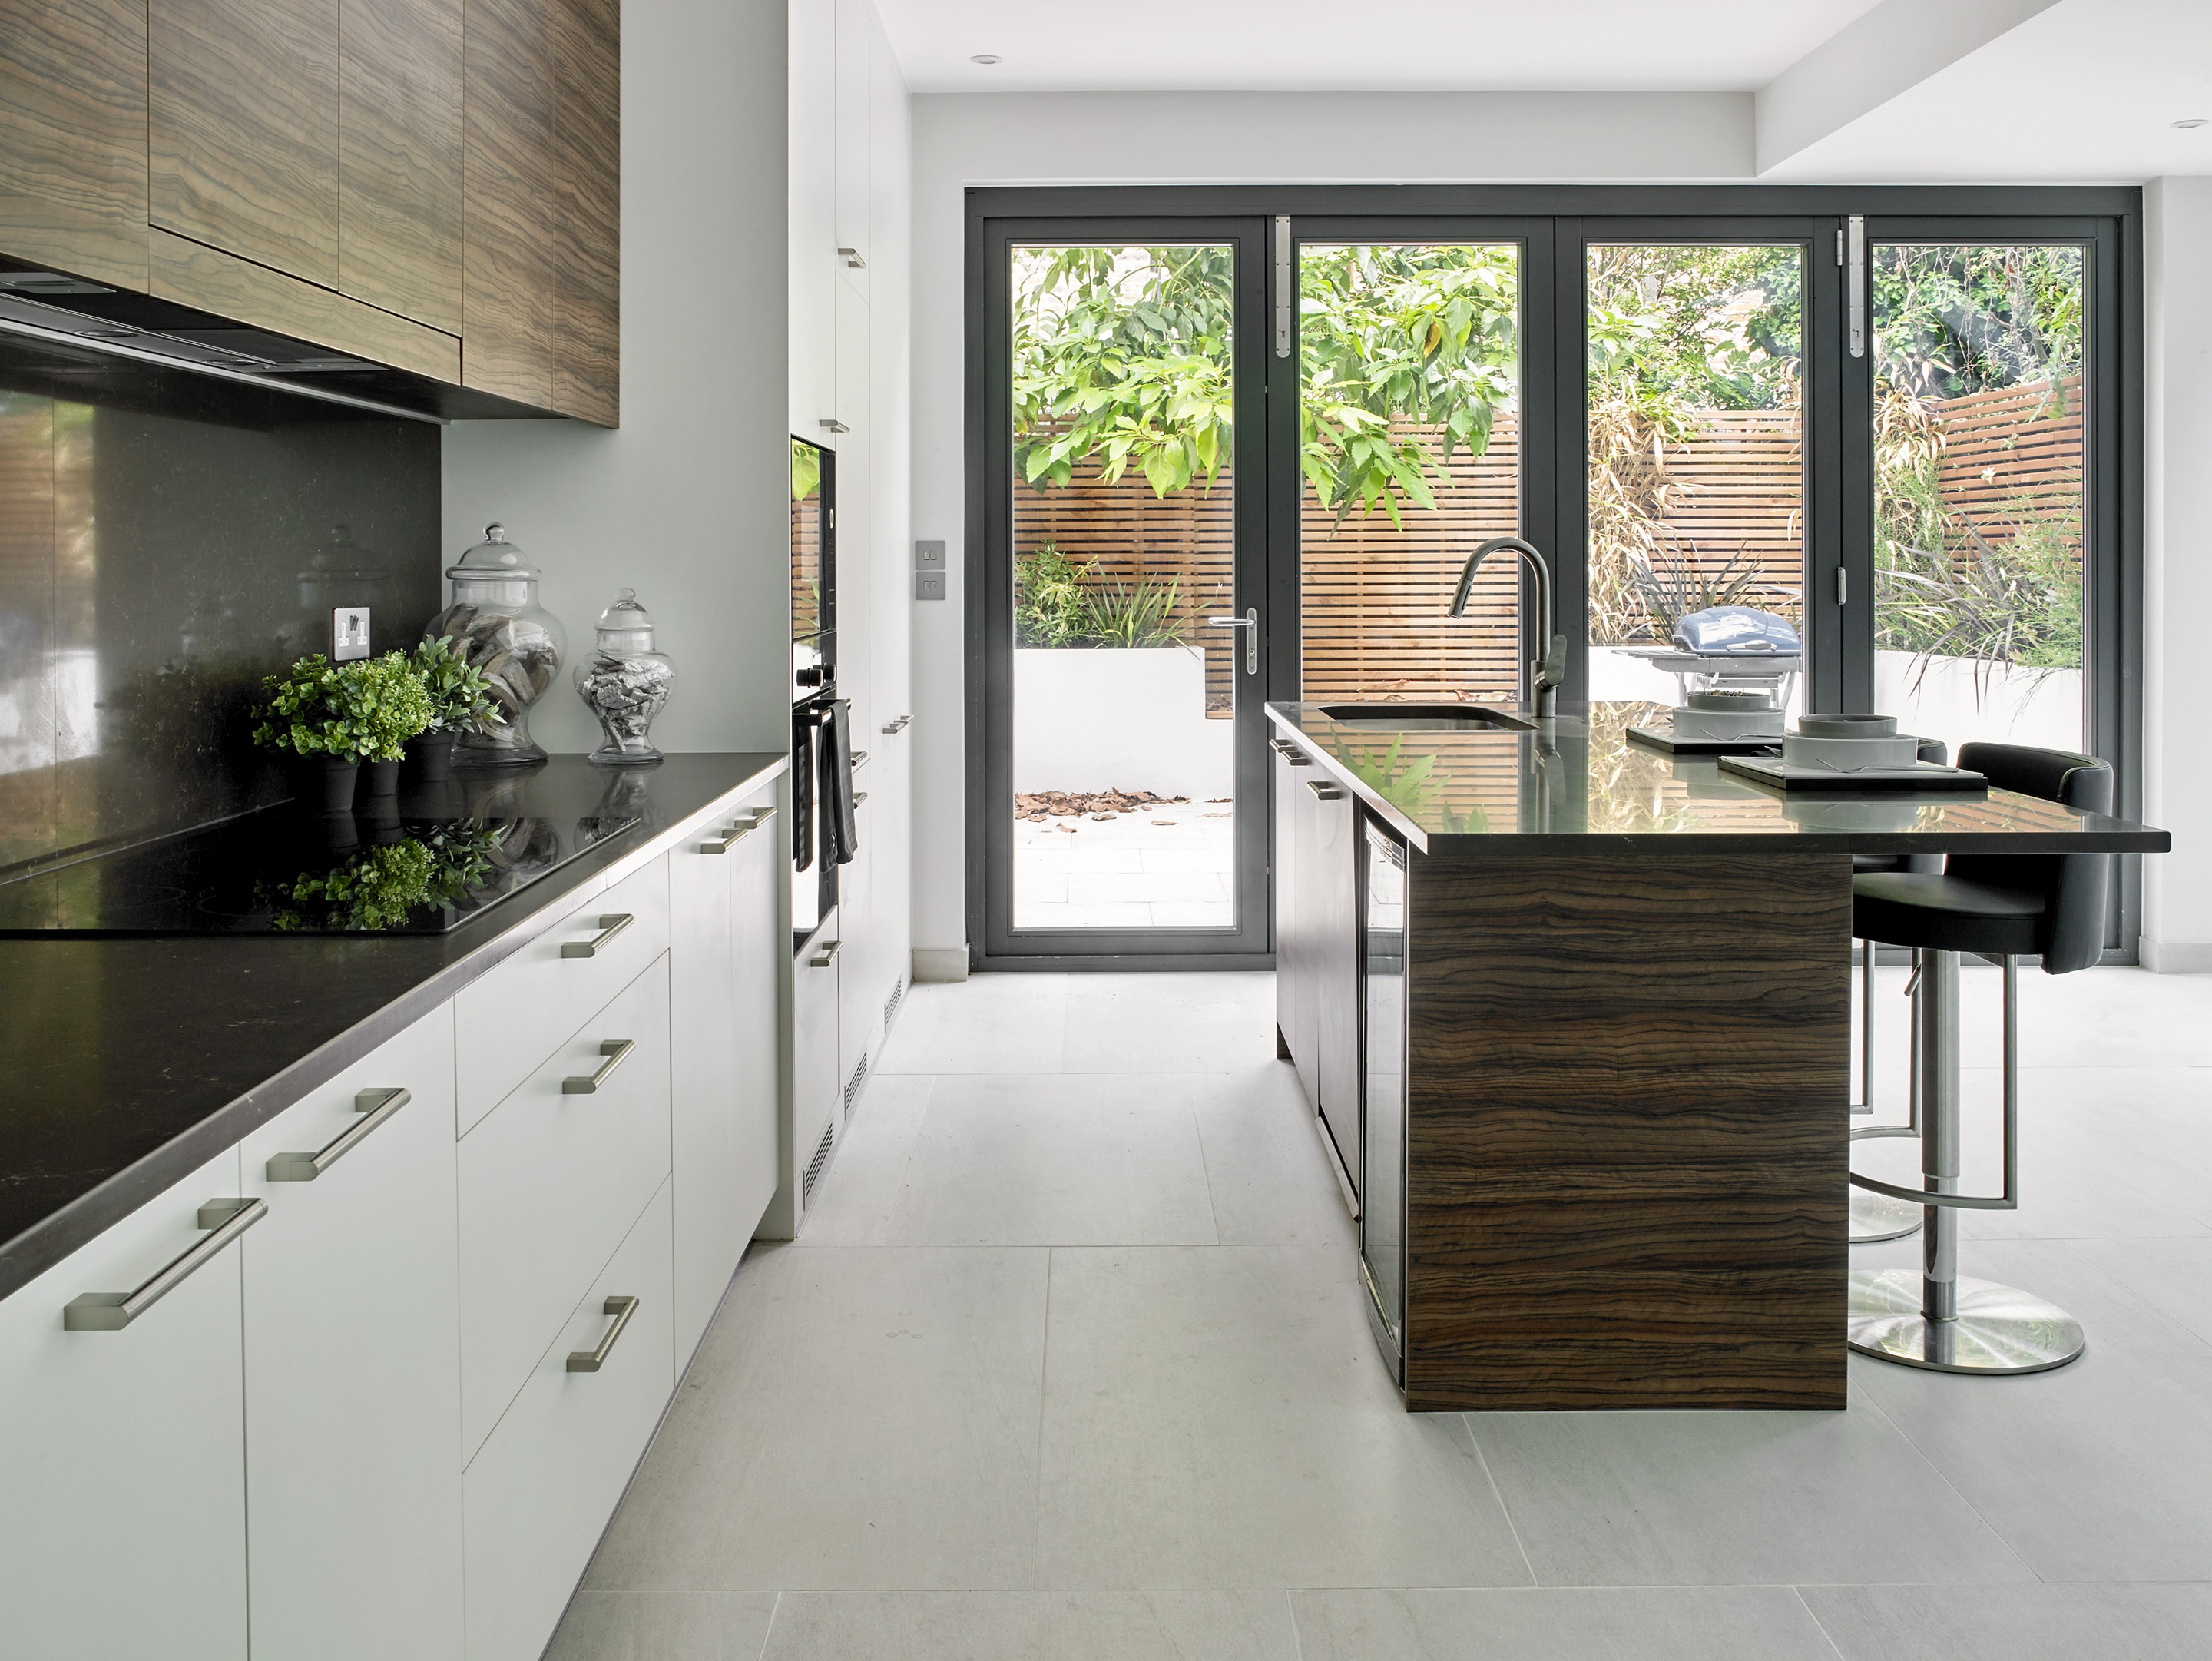 Exceptional quality kitchen